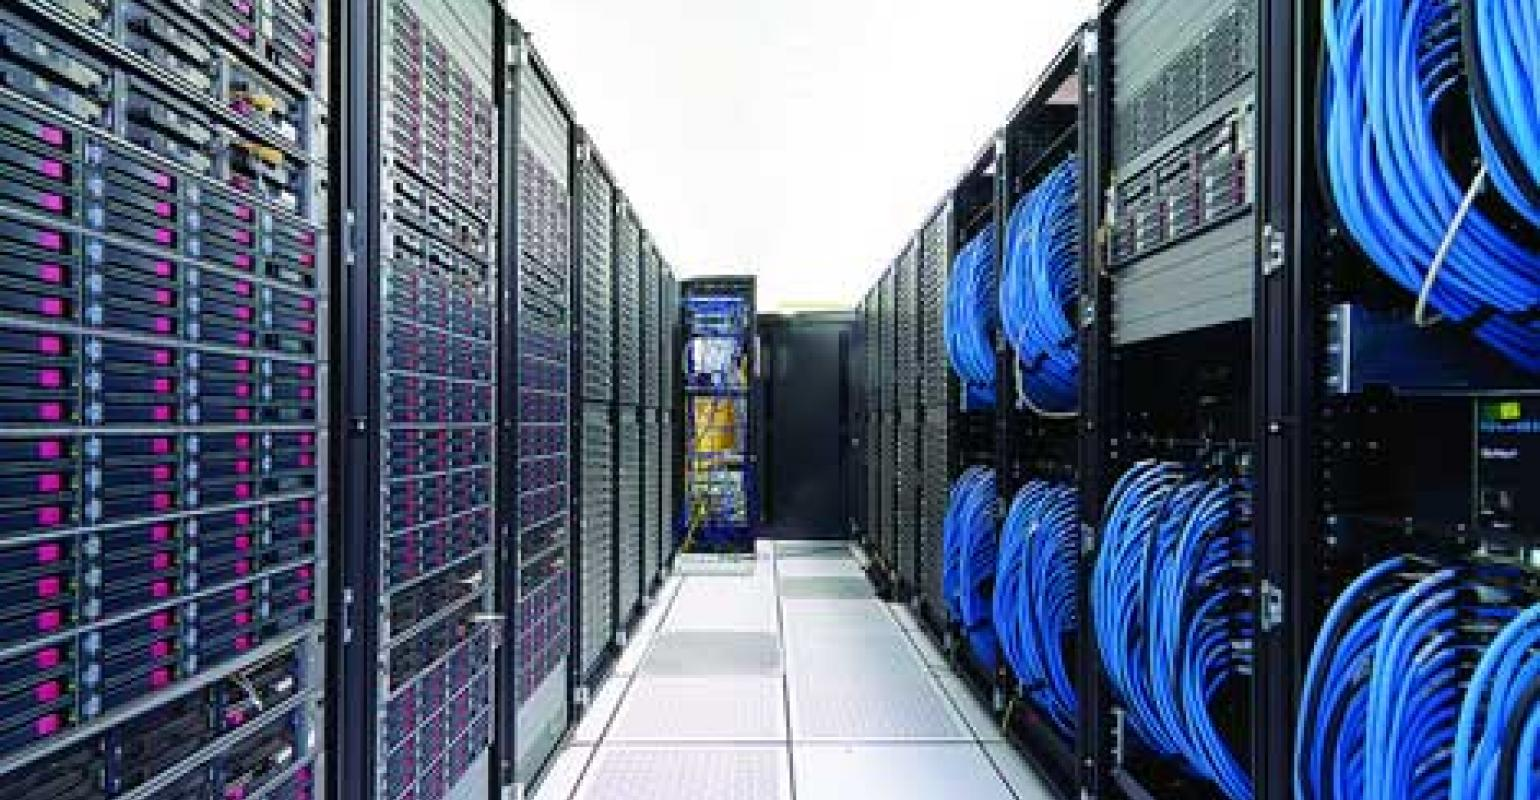 Broadcom Intros Latest Scale-Out Data Center Switch | Data Center Knowledge